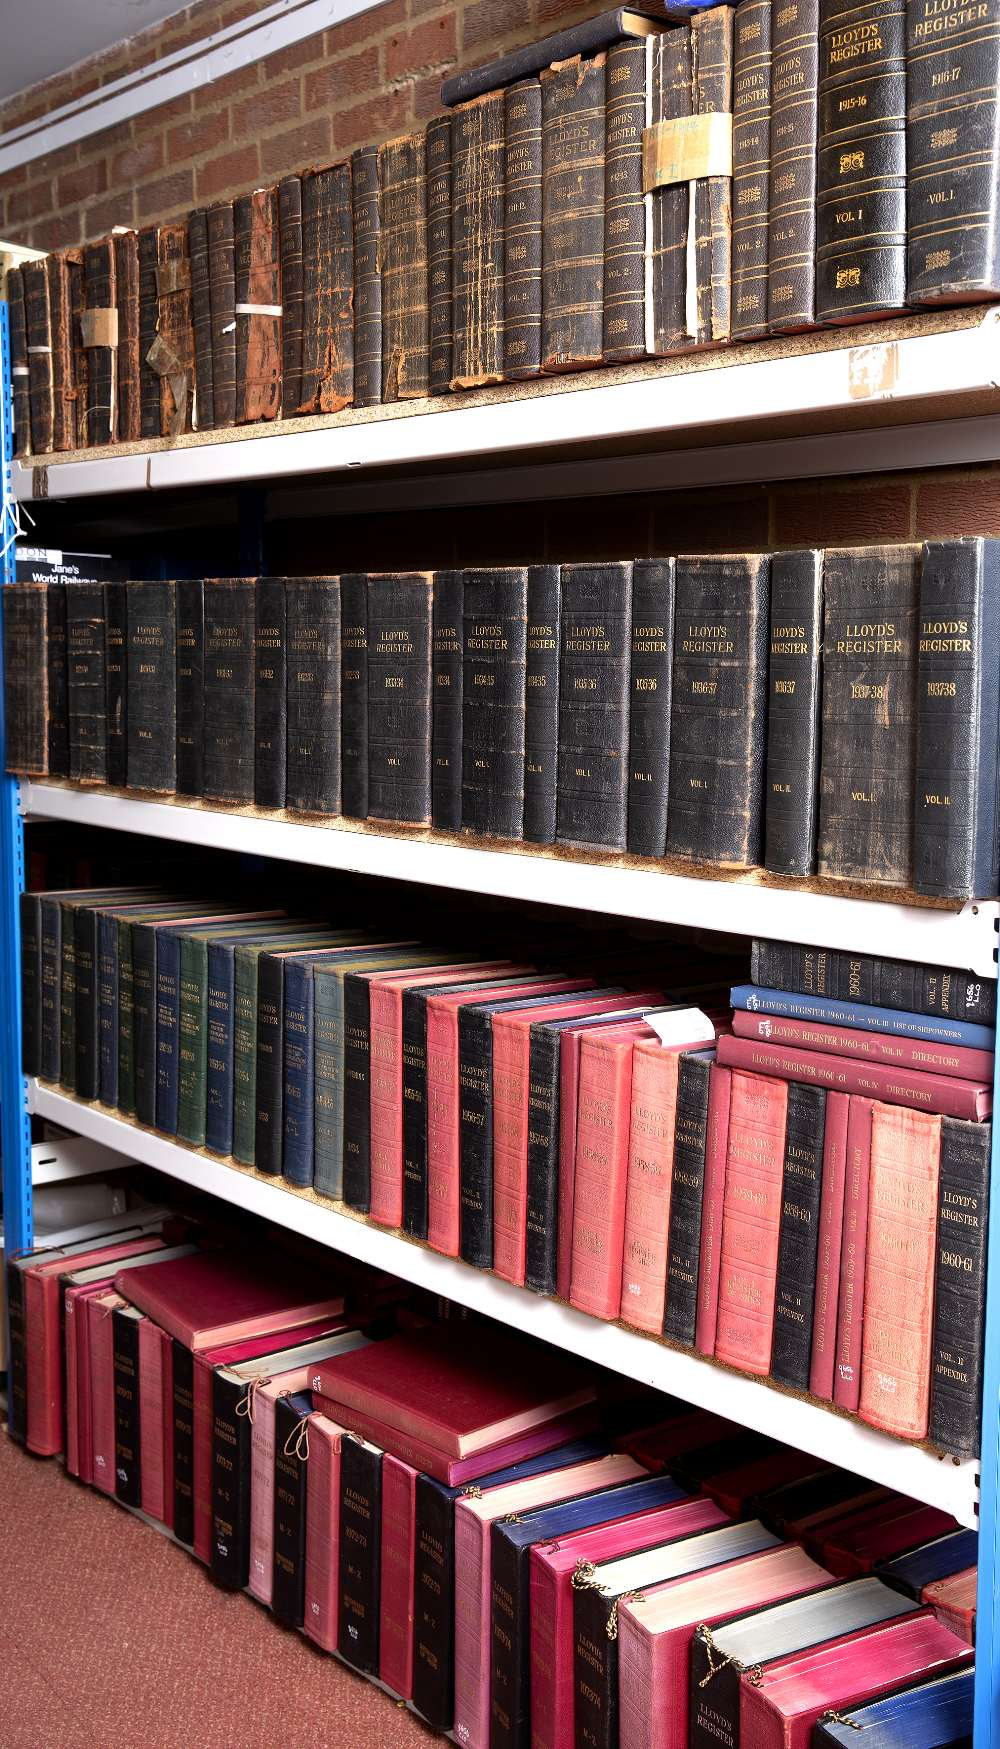 LLOYDS REGISTER OF SHIPPING: 1844-1985. With omissions. Variously bound and in mixed used condition. - Image 3 of 4